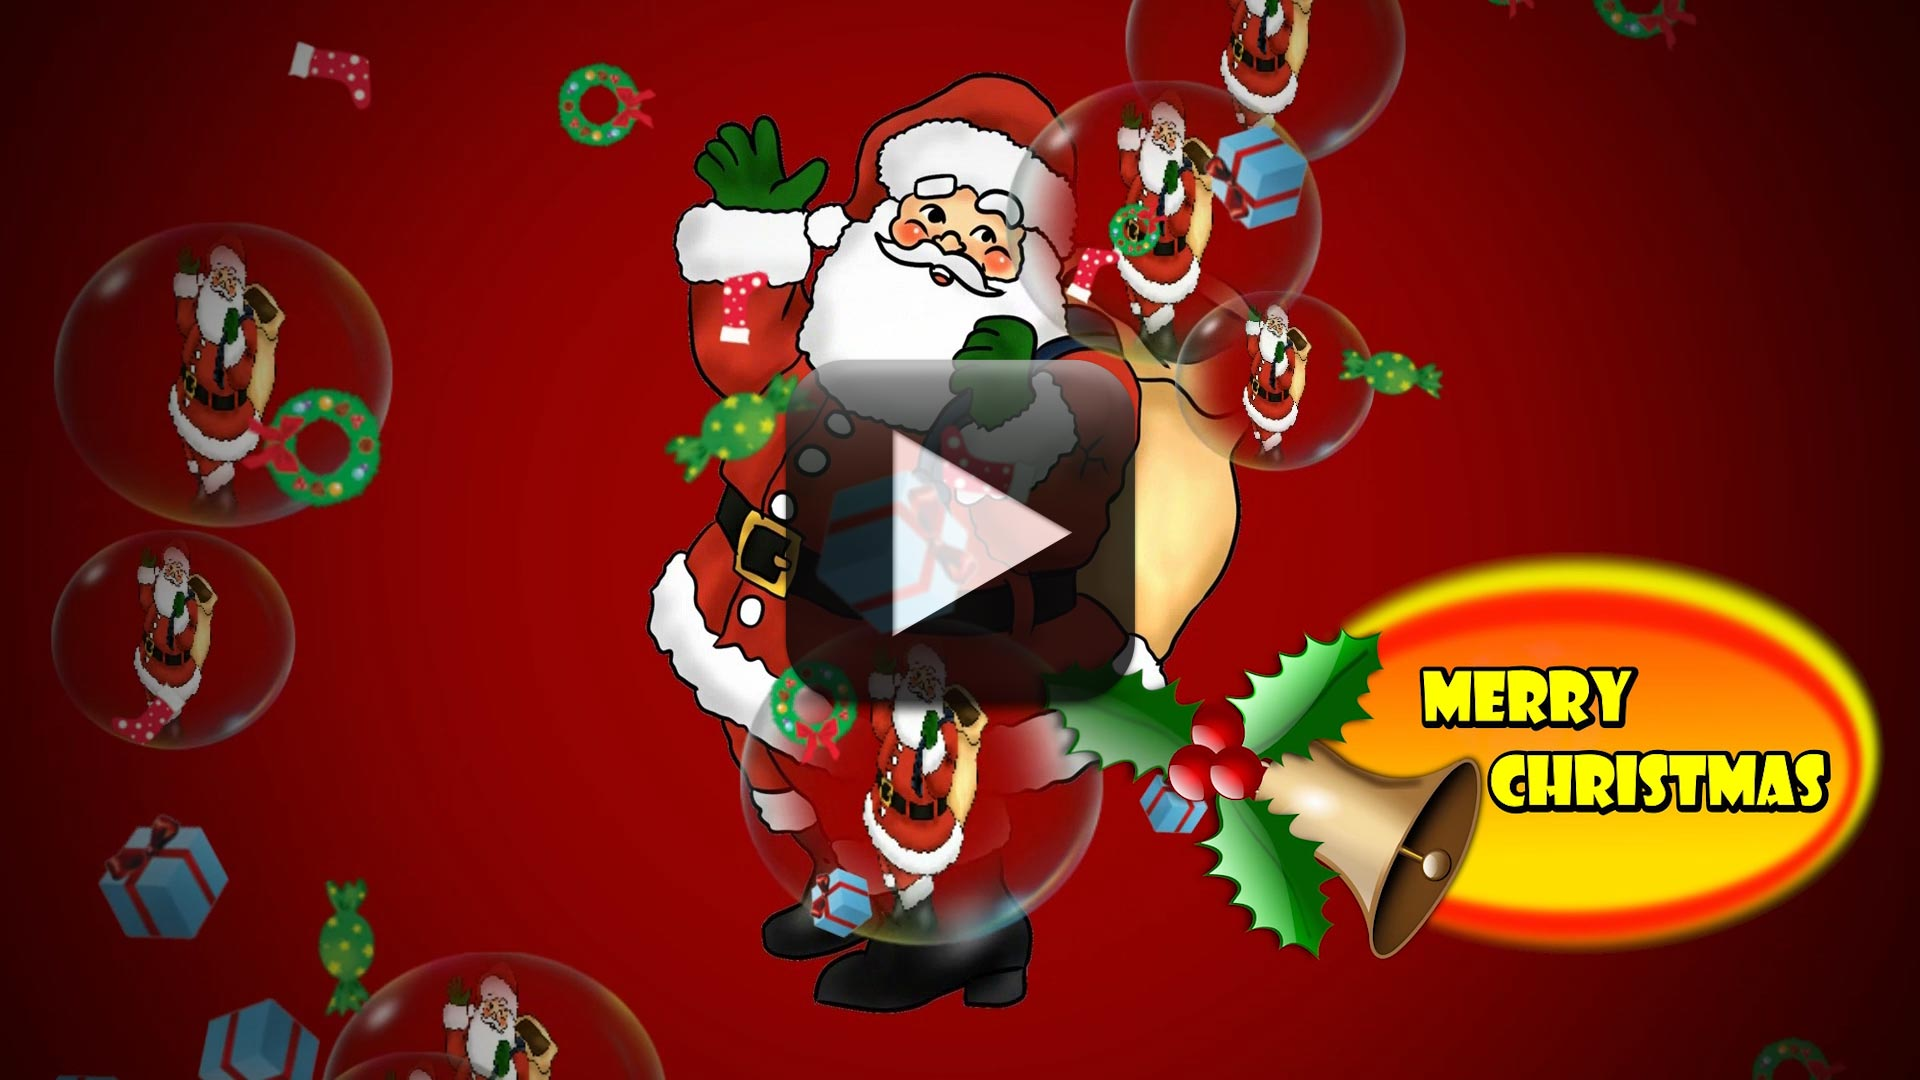 Free Christmas Video Backgrounds